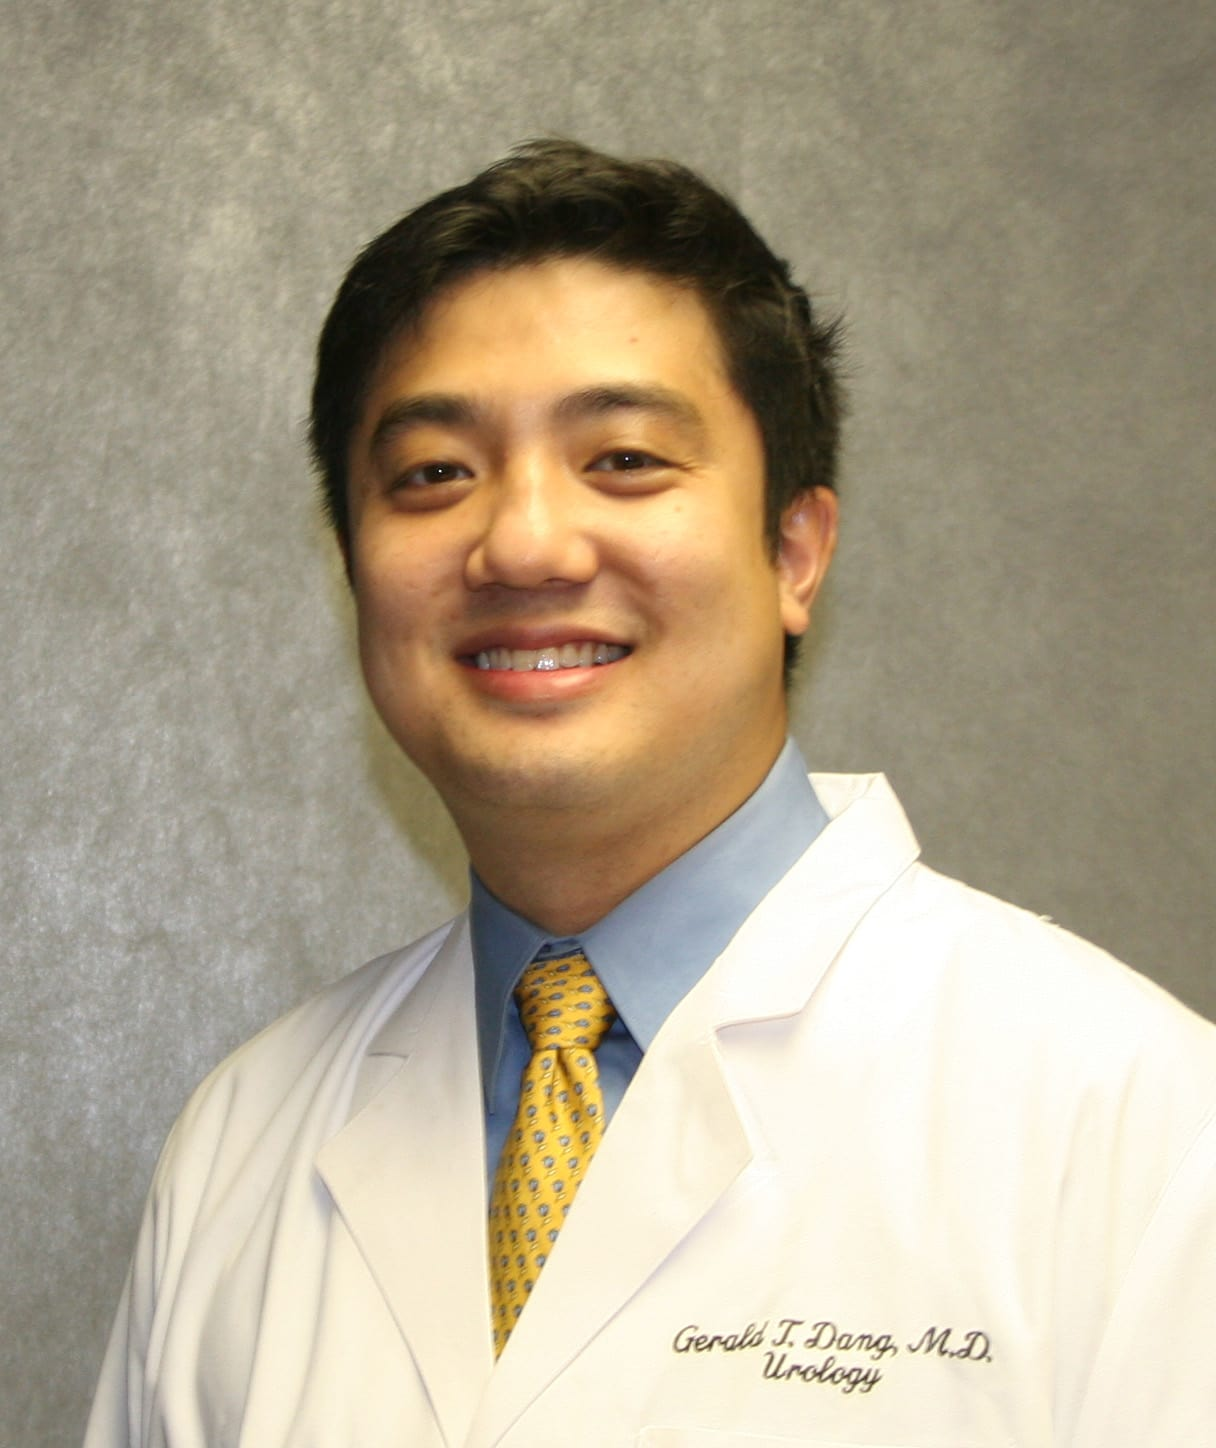 Gerald Dang, Baptist Medical Group - Urology Doctor in